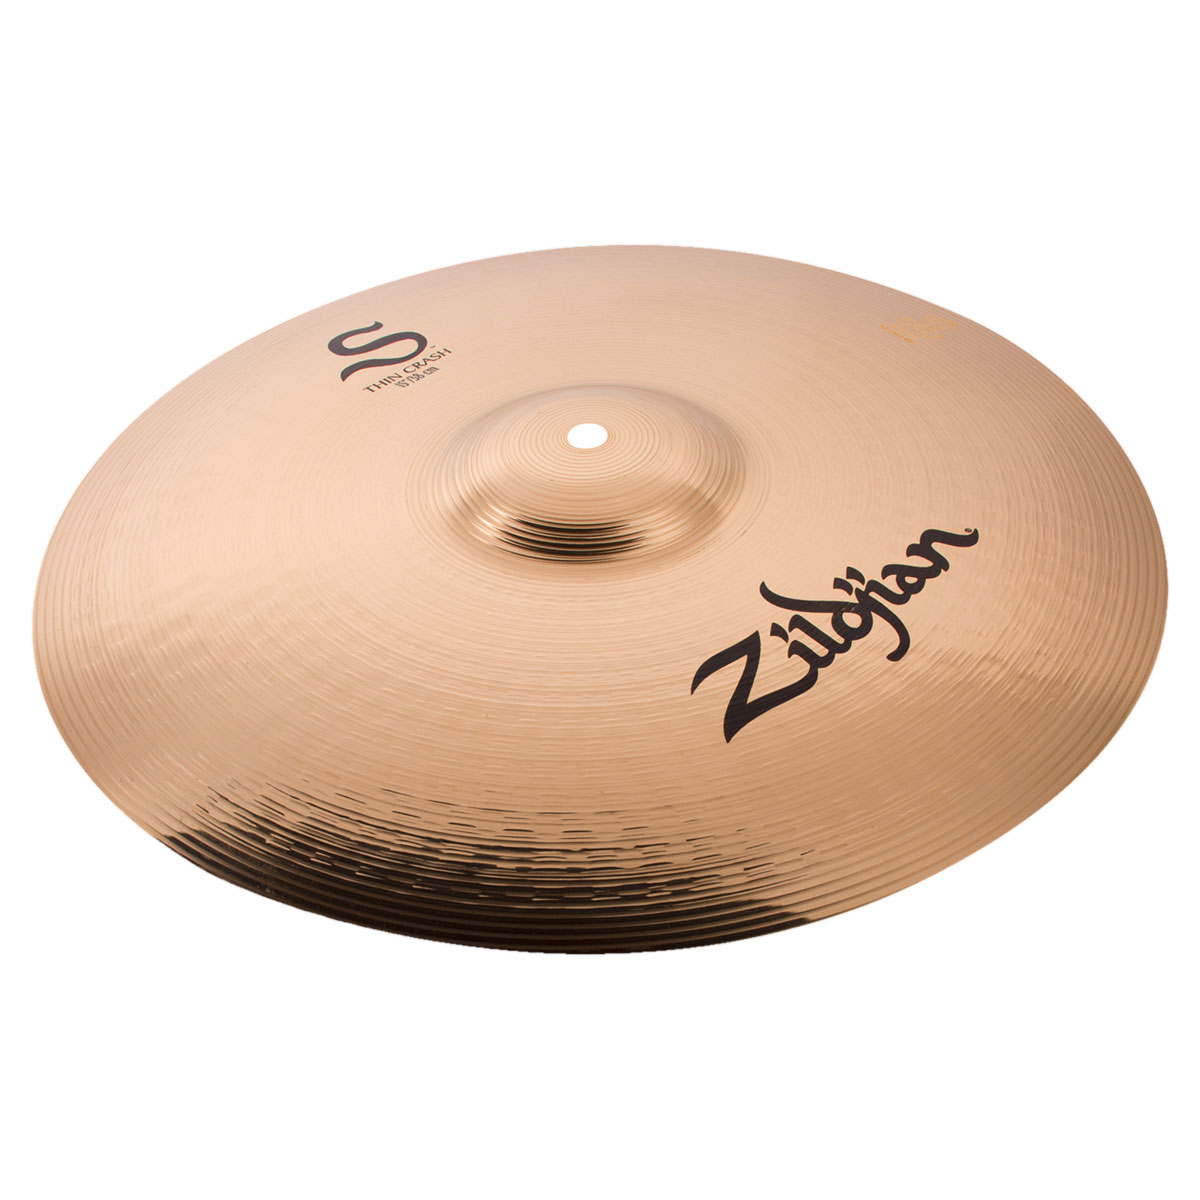 "Zildjian 15"" S Family Thin Crash Cymbal"